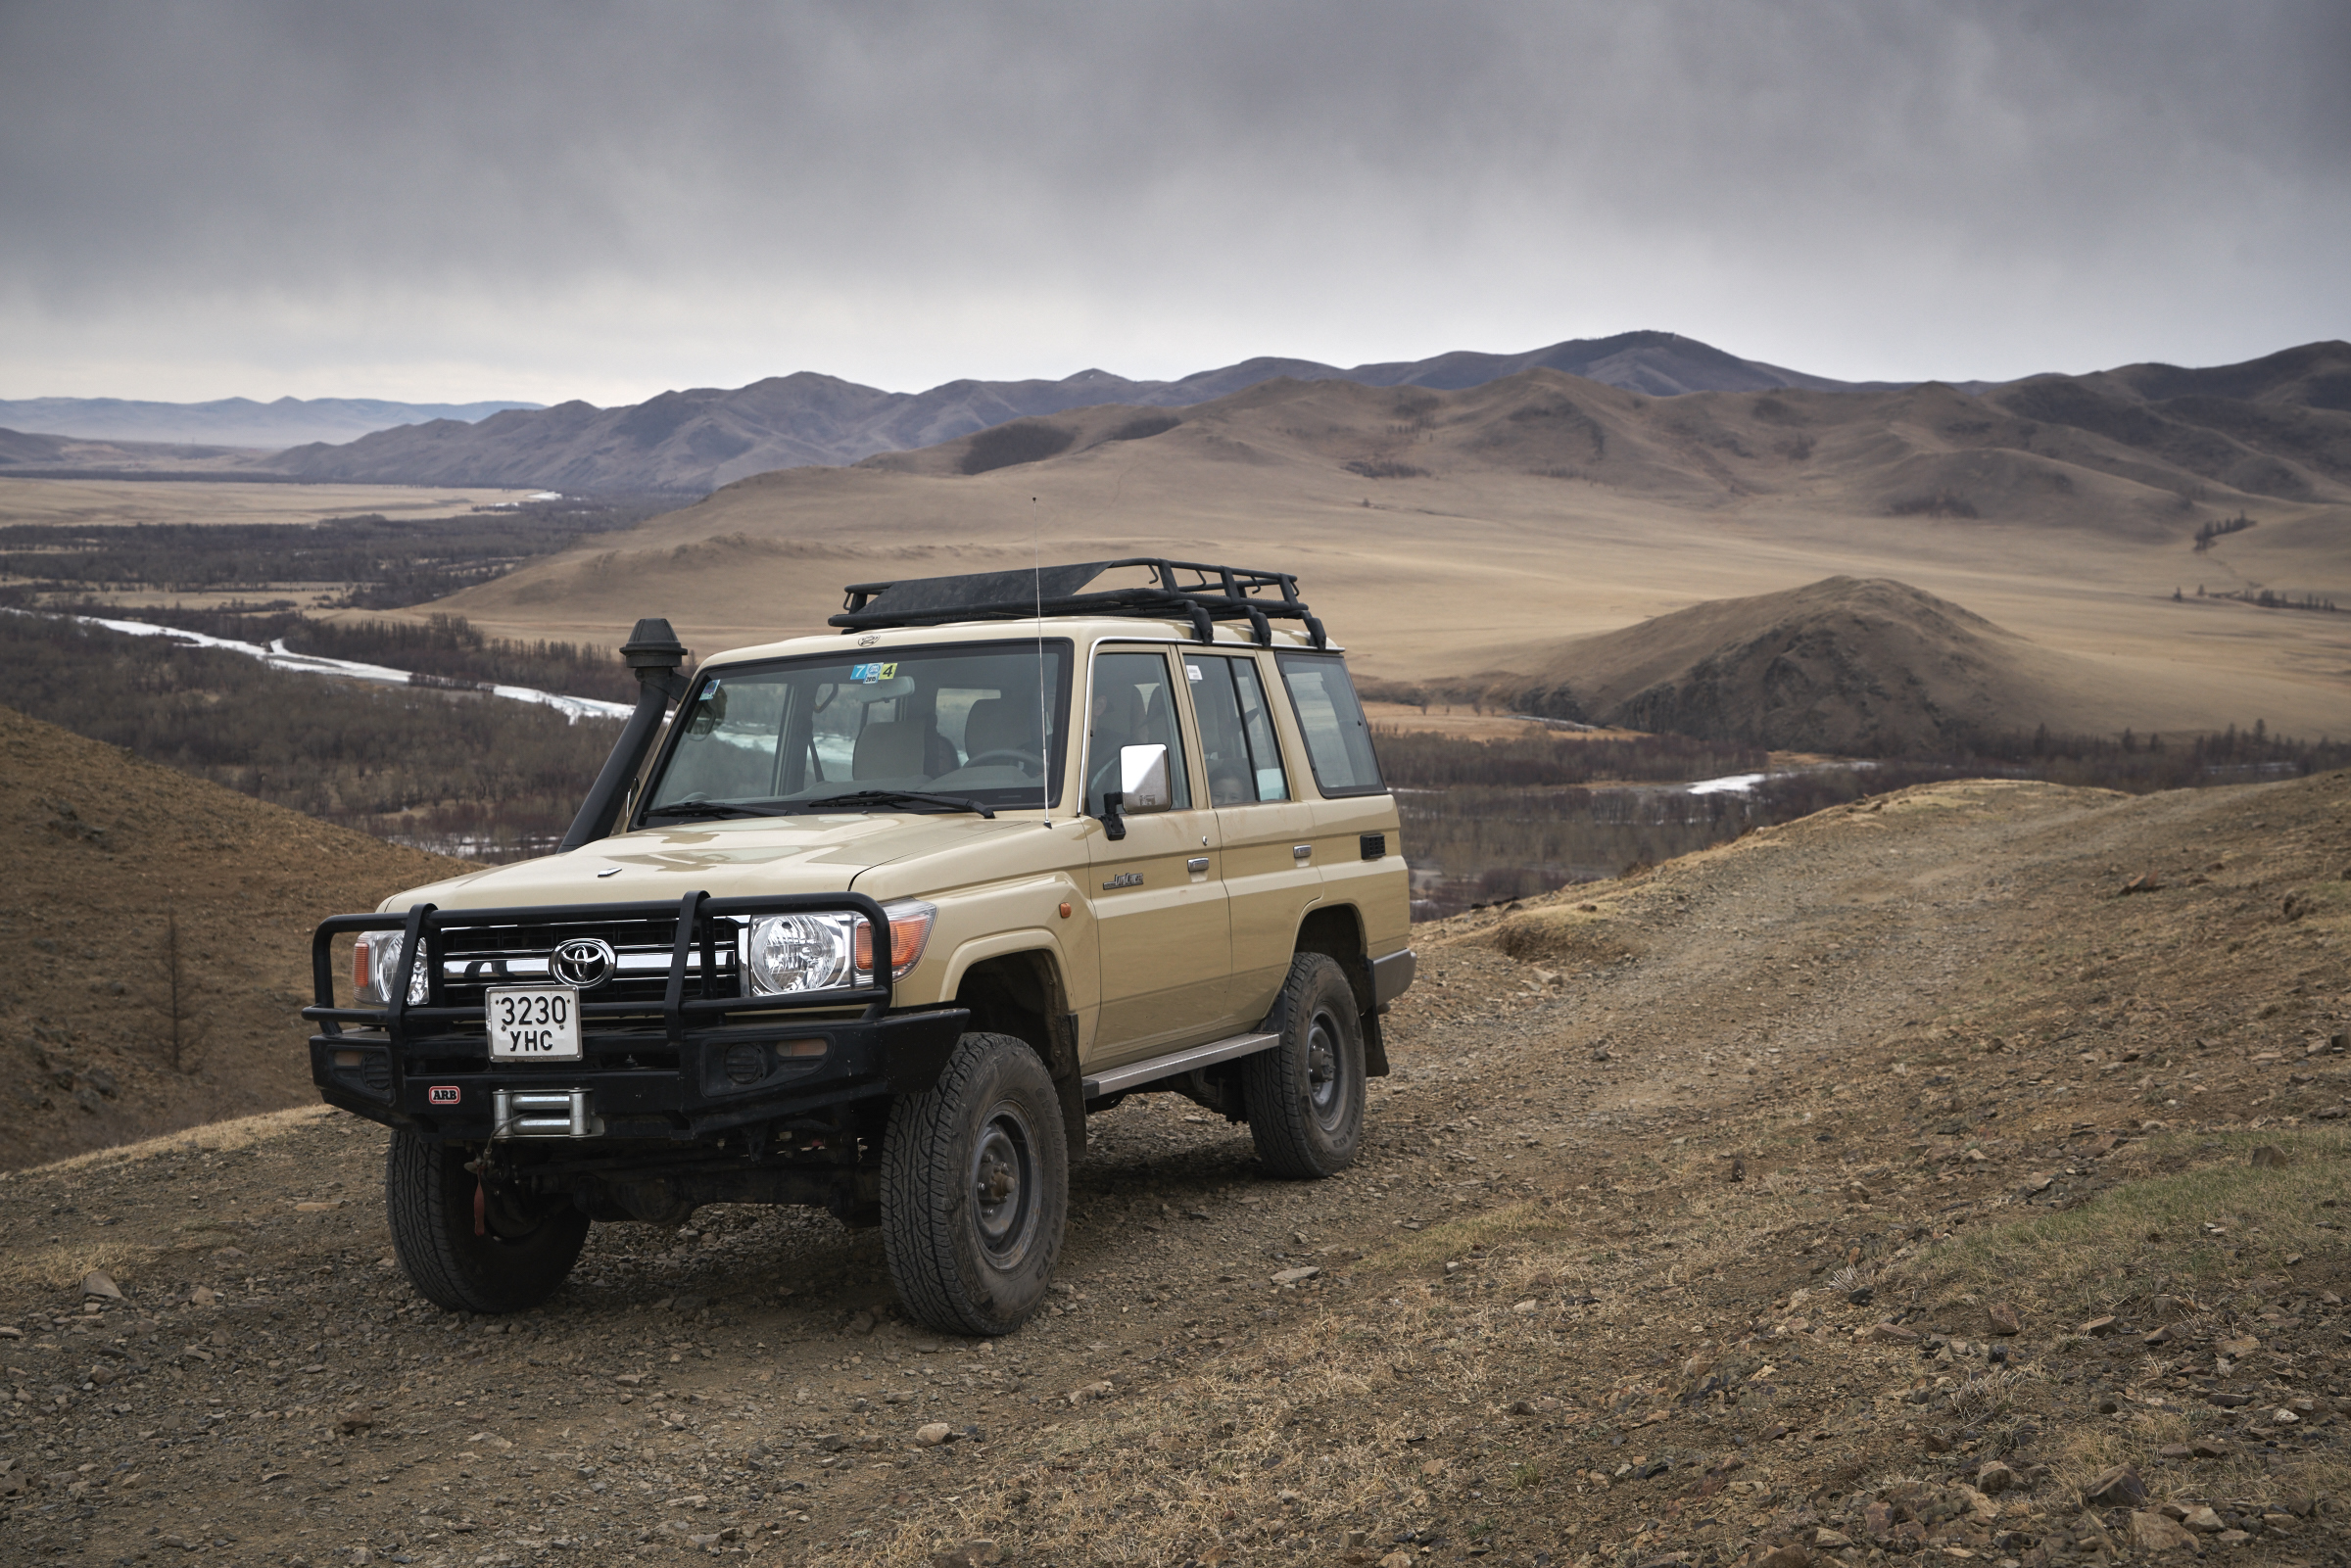 "TOYOTA LAND CRUISER 76 SERIES, MECHANIC, DIESEL, TOUGH OFF ROAD CAPABILITY. ALL OUR CARS ARE EQUIPPED  WITH ""ARB"" BUMPER AND WINCHES. WE'LL PROVIDE TWO EXTRA TIRES. ROOF TENTS ARE OPTIONAL AND IT CAN BE INSTALLED IN EVERY VEHICLE. AND WE HAVE ""LUGGAGE STORAGE SERVICE"" WITH FREE OF CHARGE."